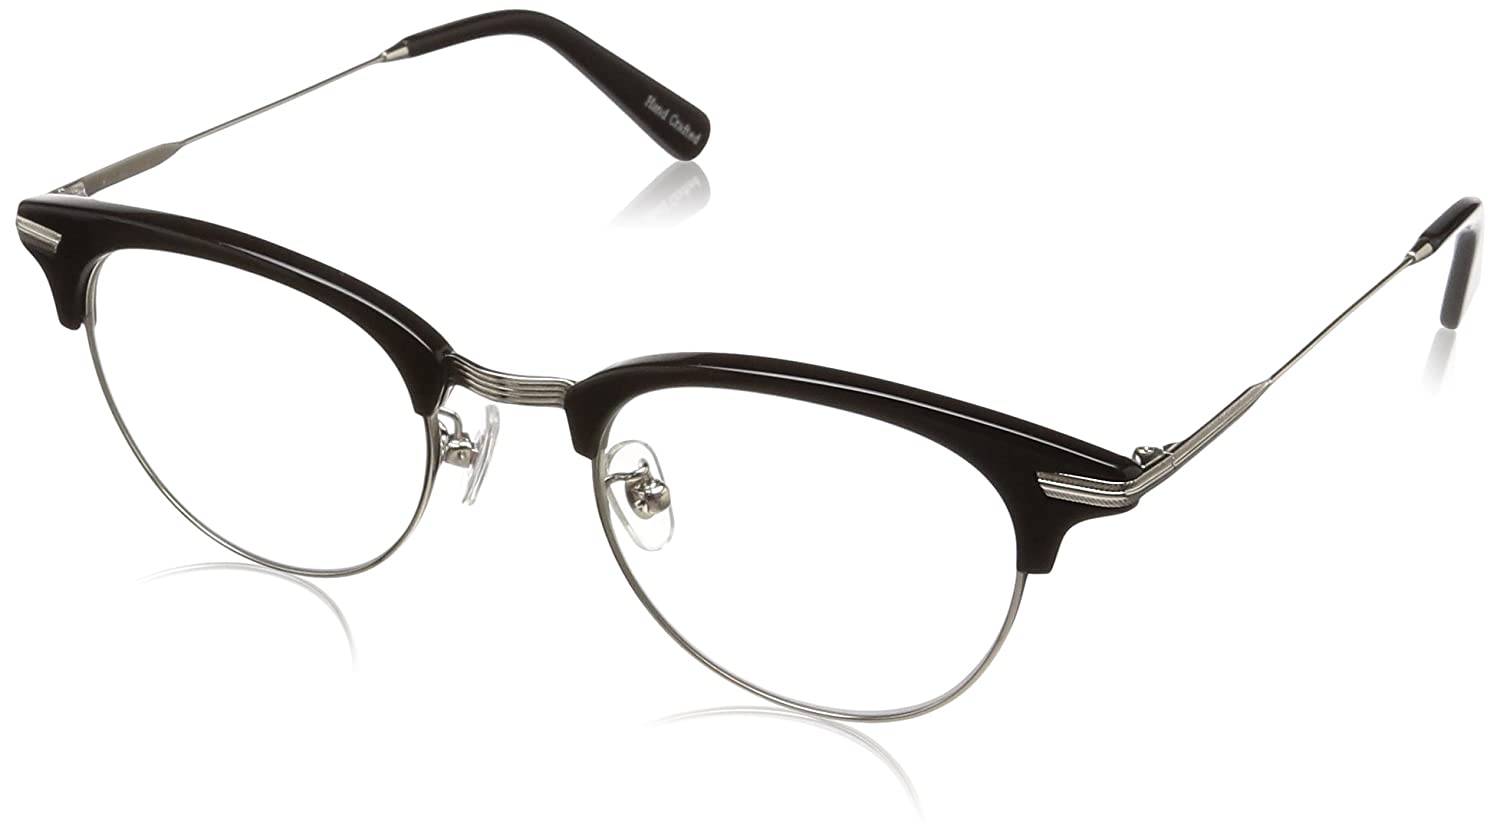 印象のデザイン [ブラックフライズ] FLY MIDWAY PHOTOCHROMIC BF-15816 B07B8SGXCS F BLACK/GREY BF-15816 FLY PHOTOCHROMIC 日本 F (FREE サイズ) 日本 F (FREE サイズ)|BLACK/GREY PHOTOCHROMIC, 上齋原村:06f3d026 --- ballyshannonshow.com